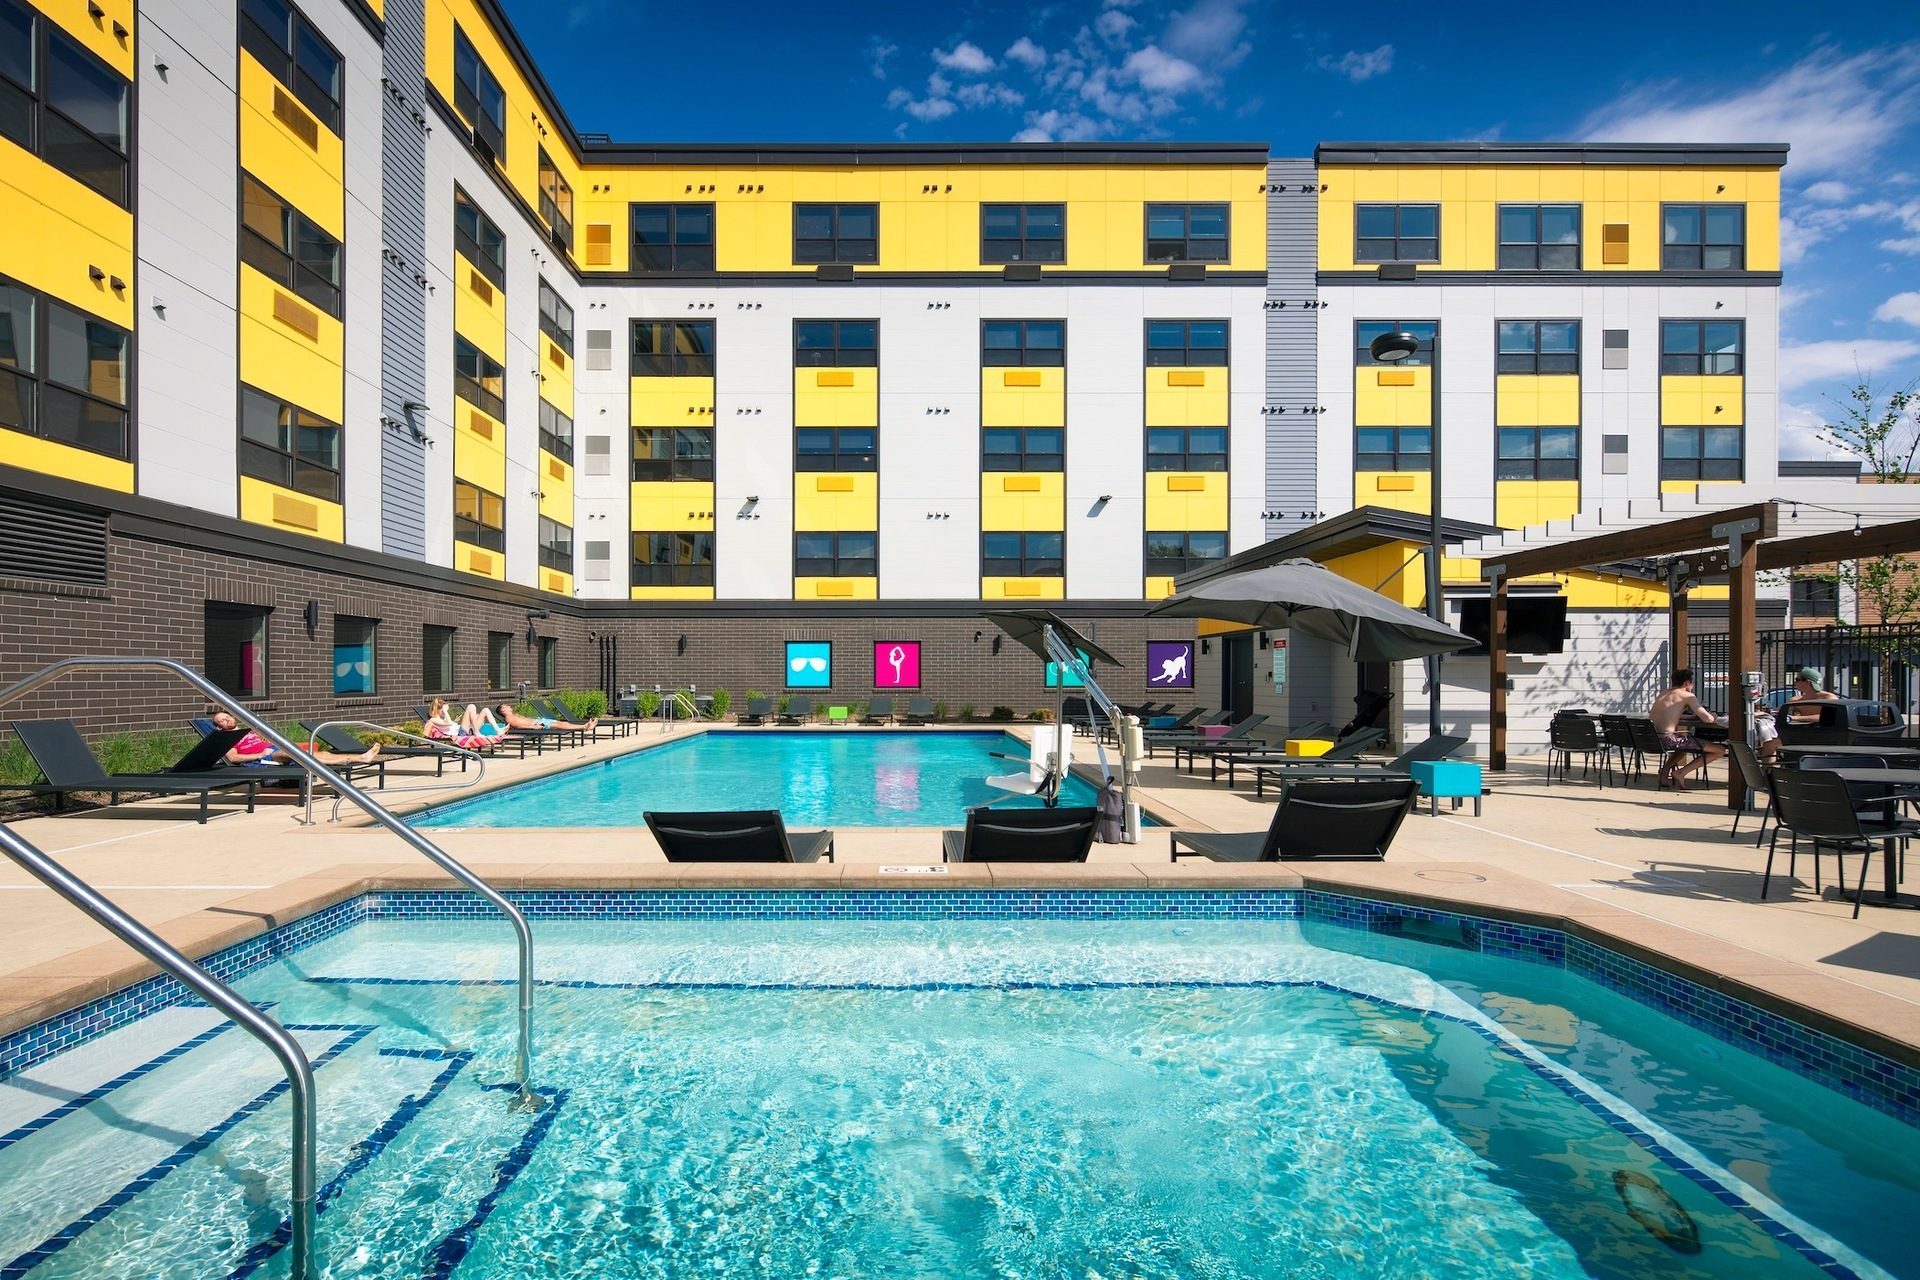 The comfortable outdoor swimming pool area at the Spectrum apartments in Minneapolis, Minnesota, by DJR Architecture.